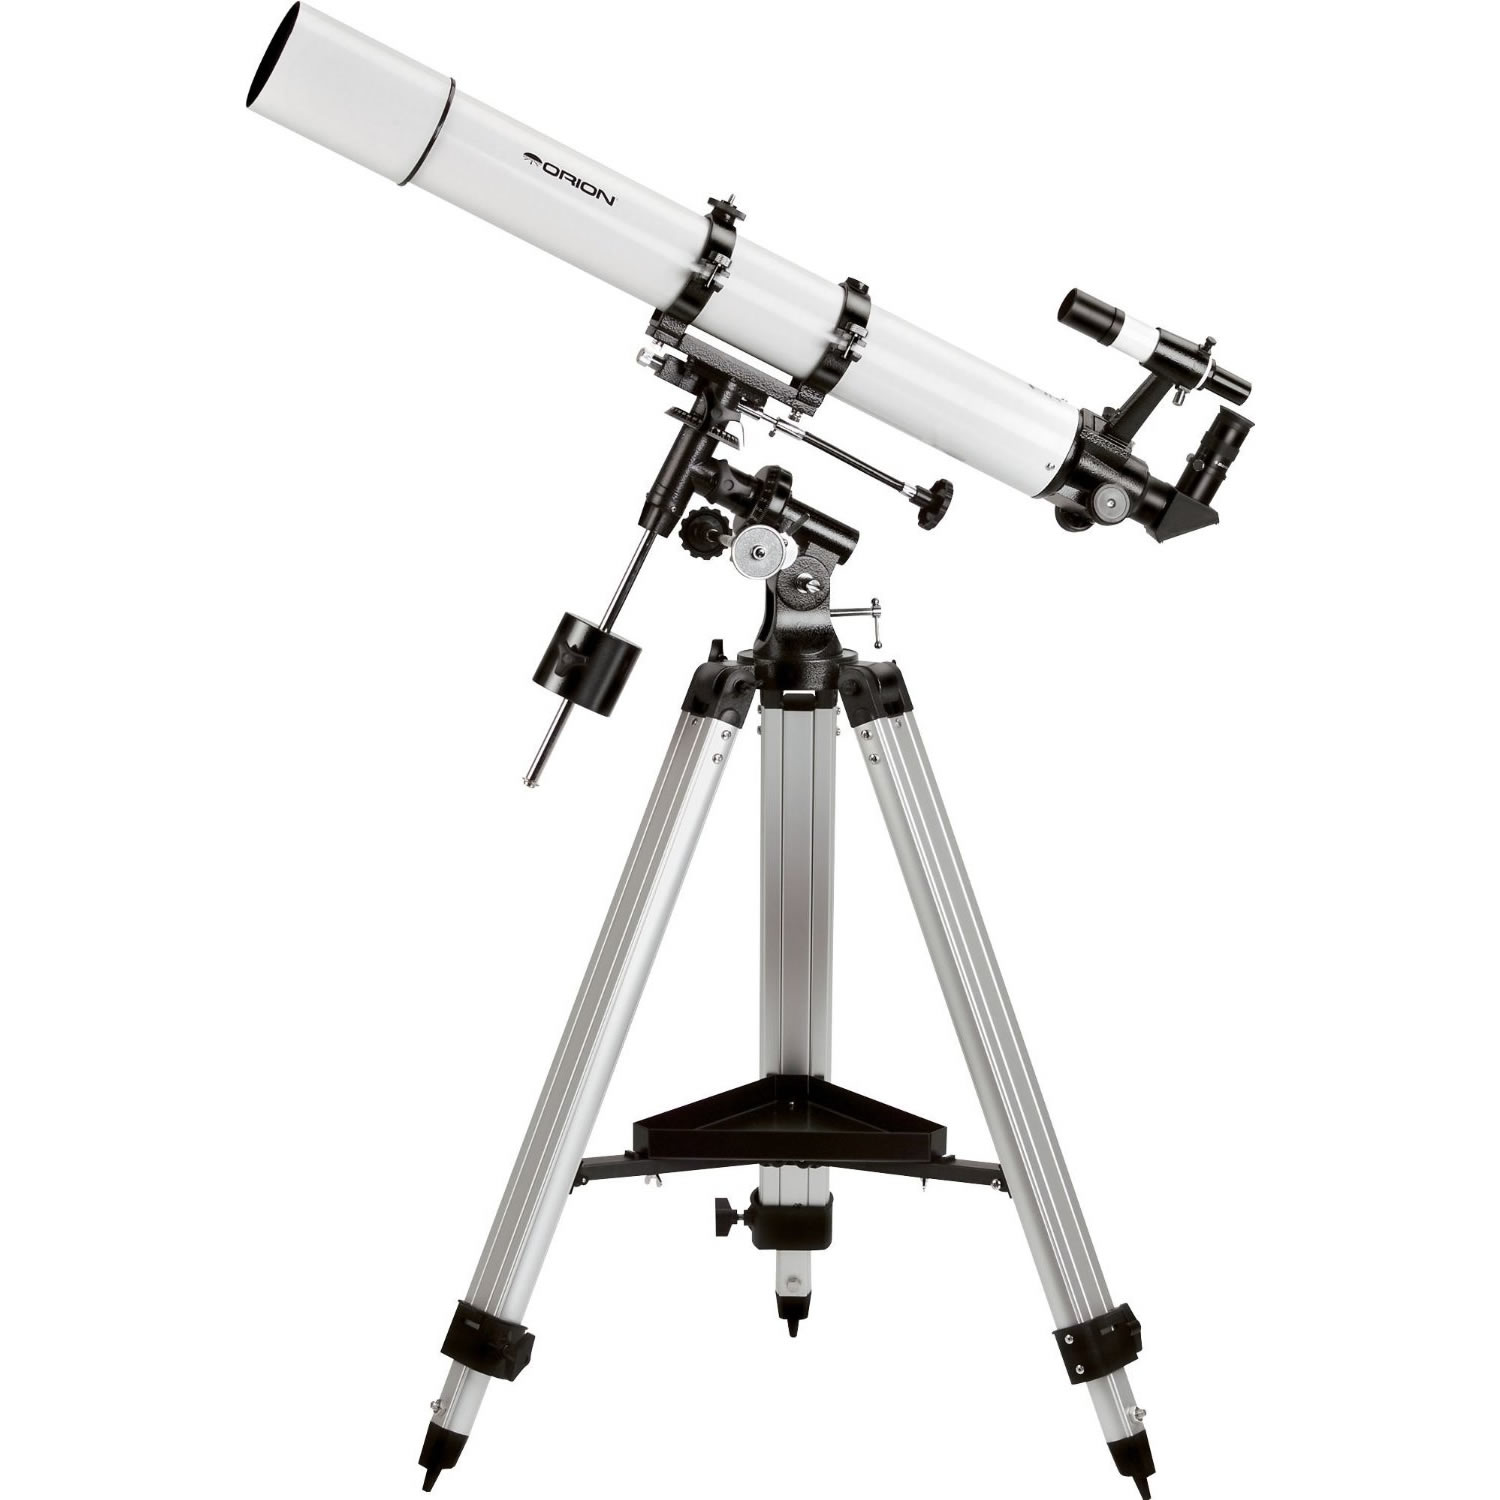 Orion 9024 AstroView 90mm Equatorial Refractor Telescope ...